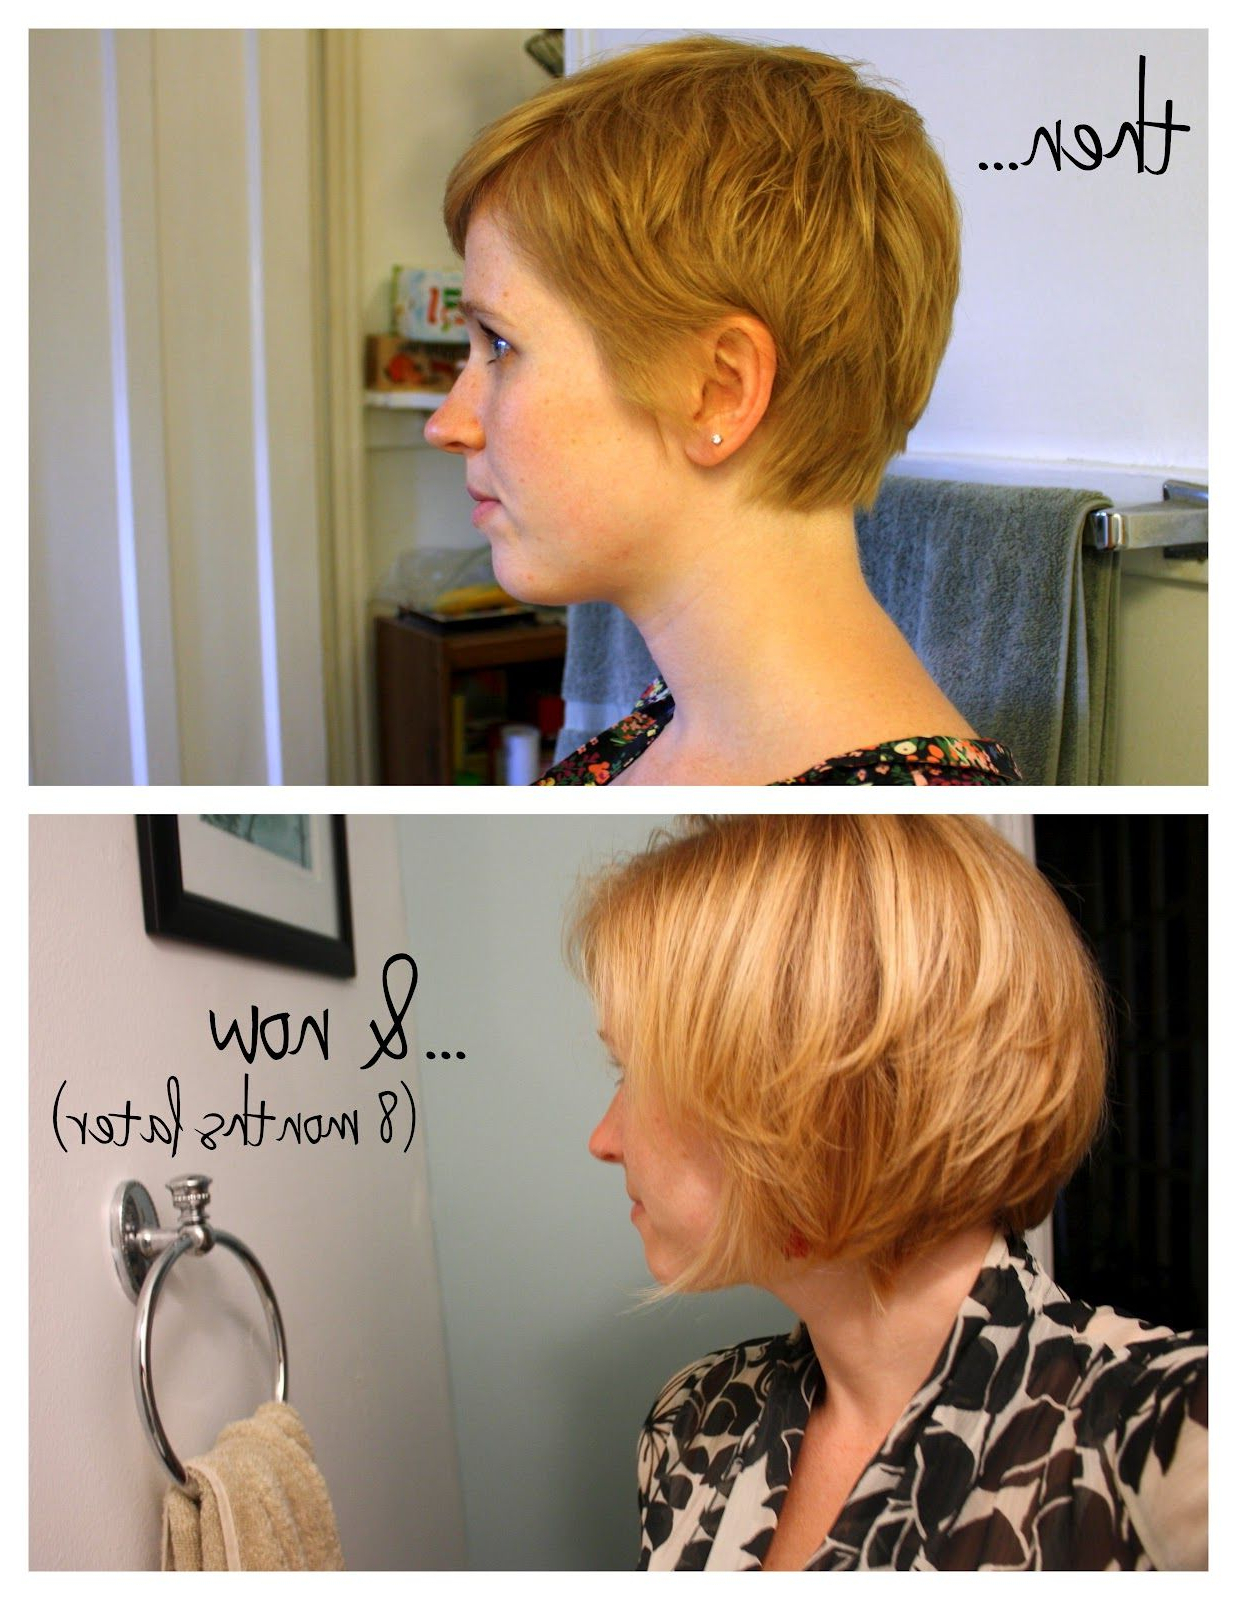 Unspeakable Visions: The Pixie Cut Series: An Update | Hair/beauty Regarding Stylish Grown Out Pixie Hairstyles (Gallery 6 of 20)